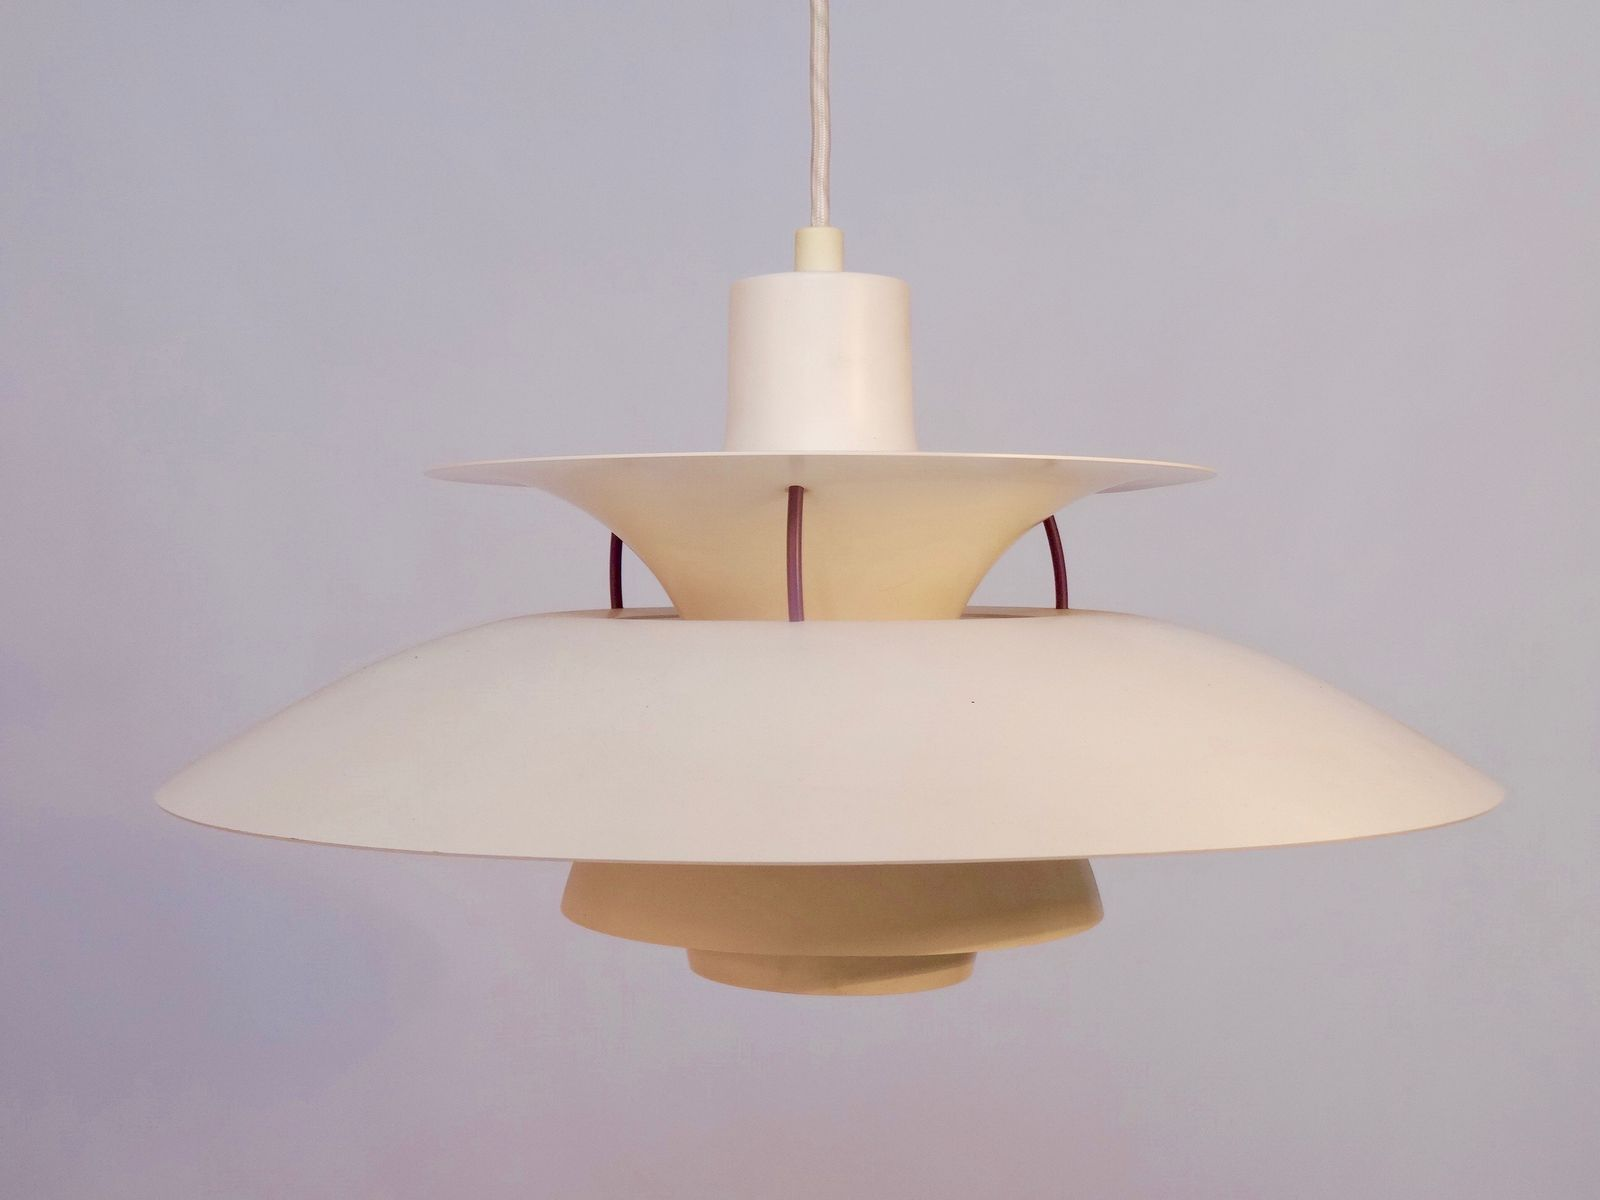 Lampe suspension ph5 vintage blanche par poul henningsen for Lampe suspension blanche